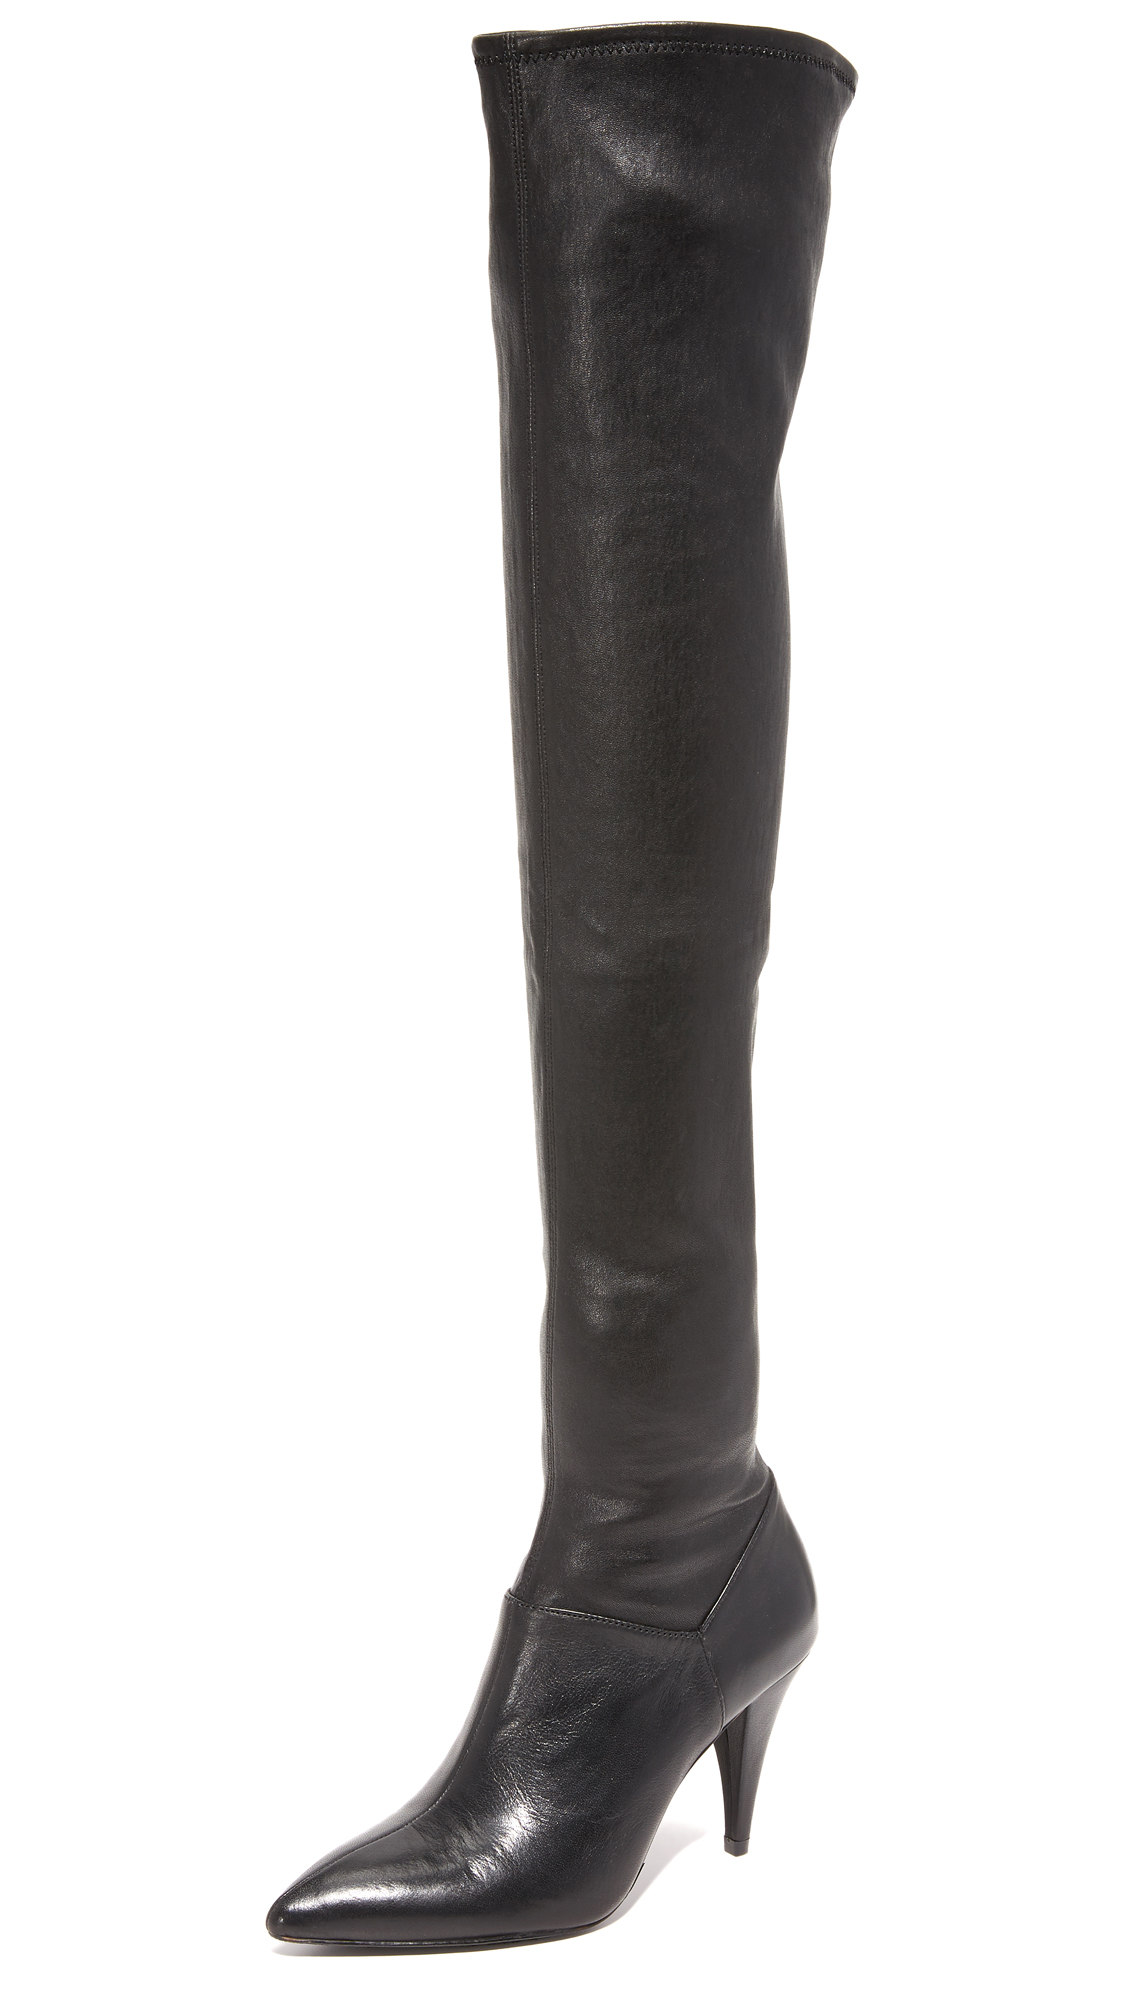 Alice + Olivia Casey Over The Knee Boots - Black